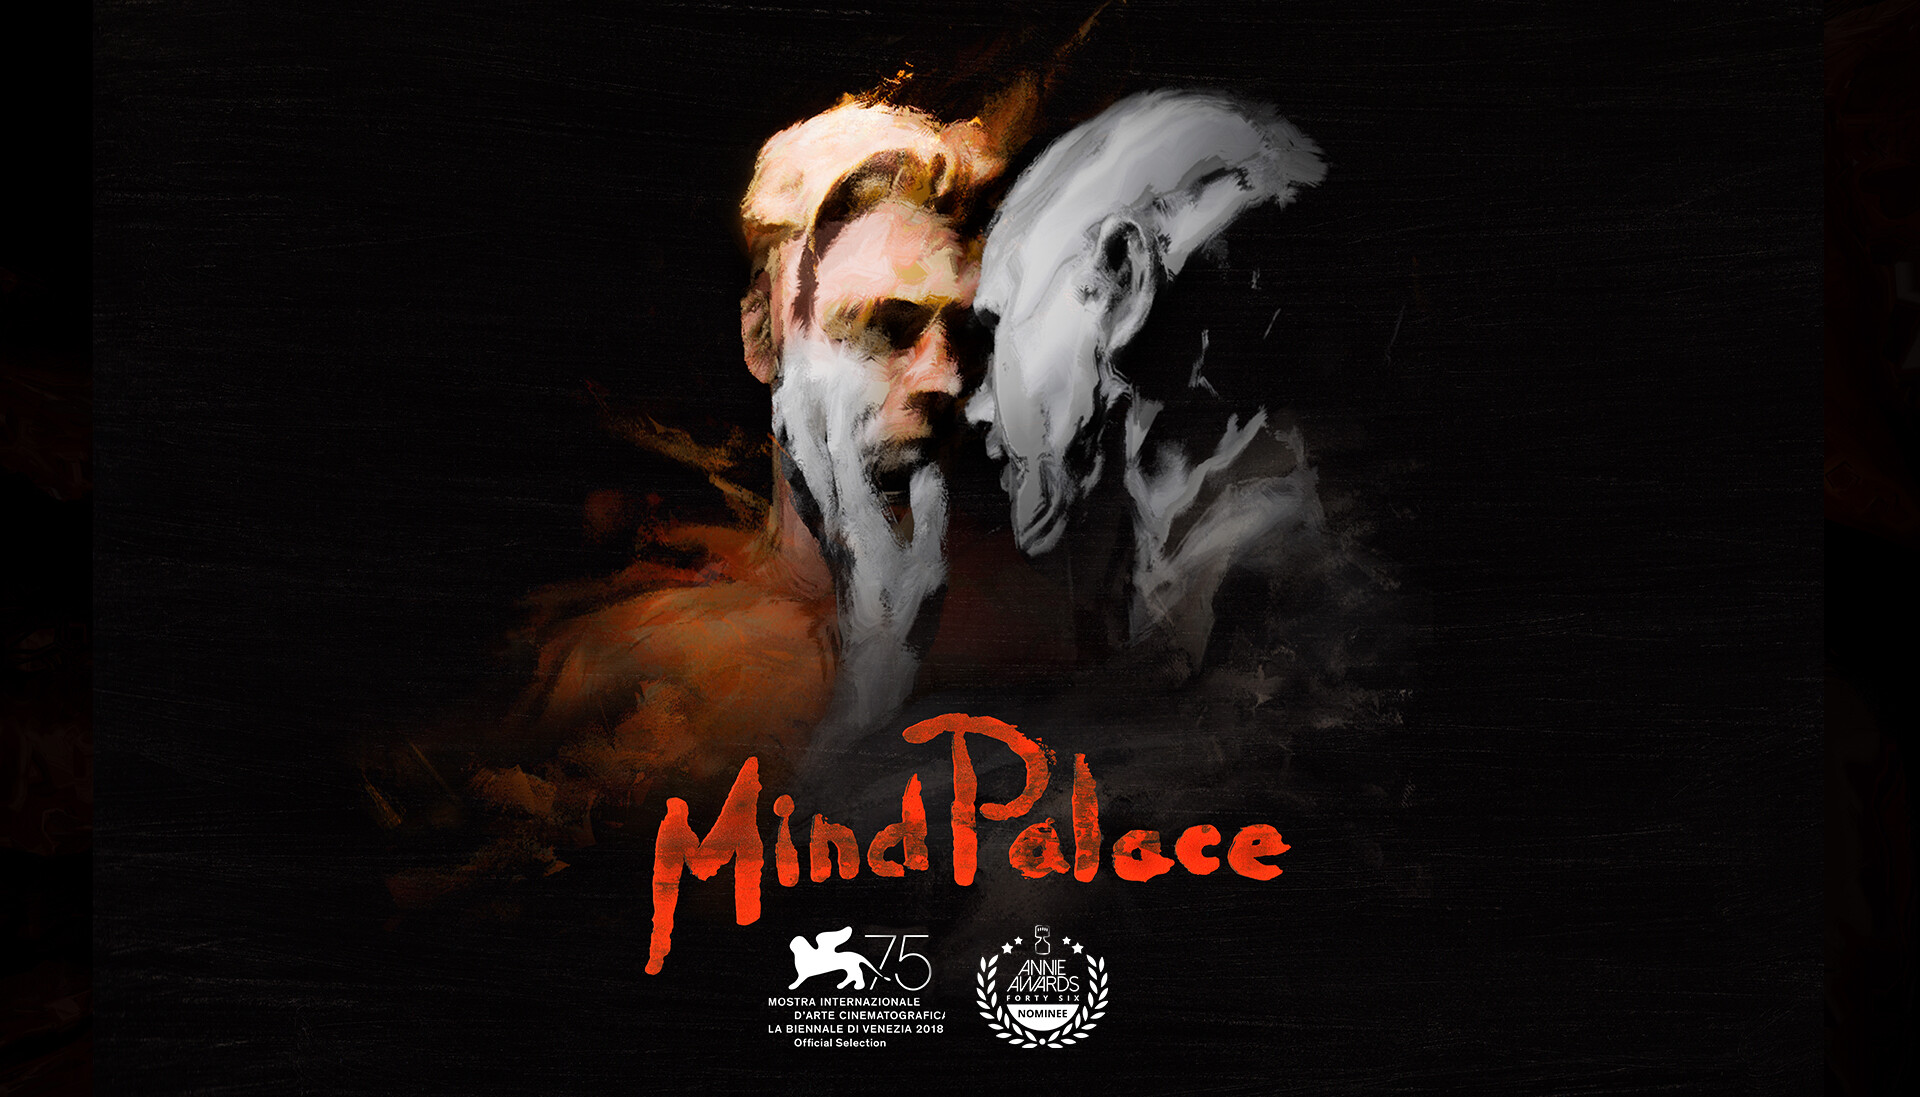 MindPalace VR realtime Experience